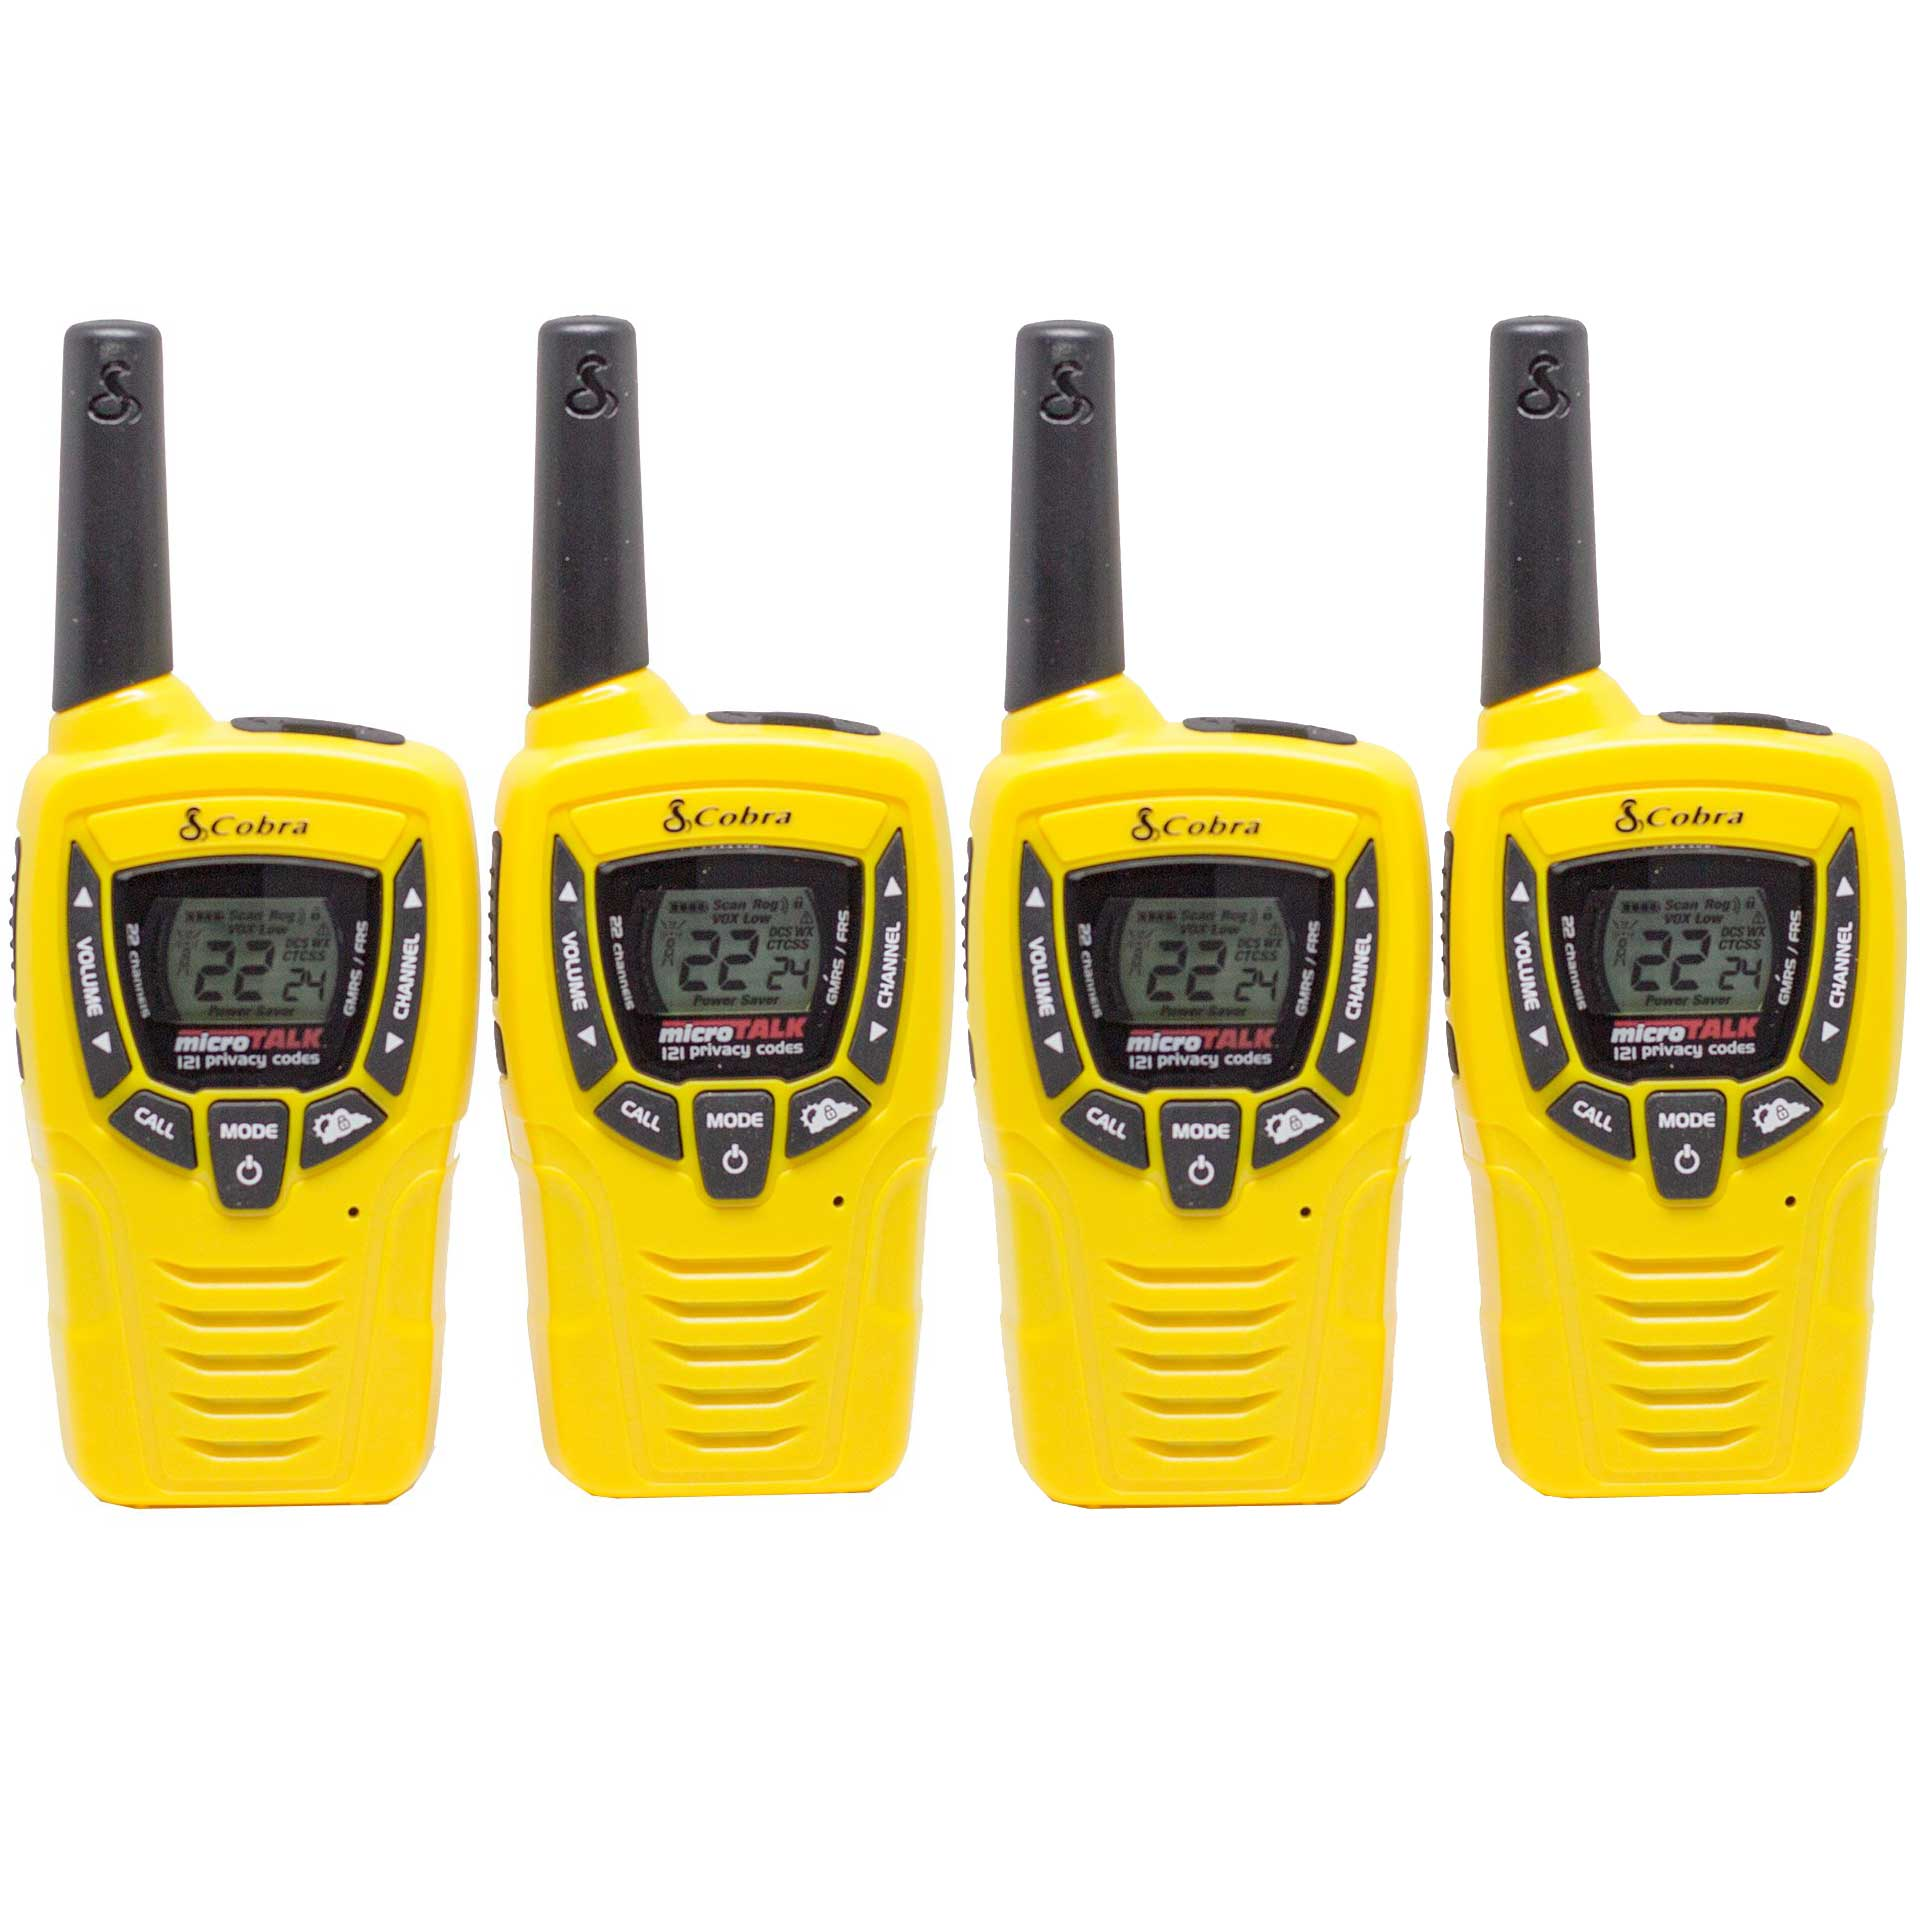 Cobra 23 Mile 22 Channel Walkie Talkie VOX NOAA Receiver Radios CX335 (2 Pairs)